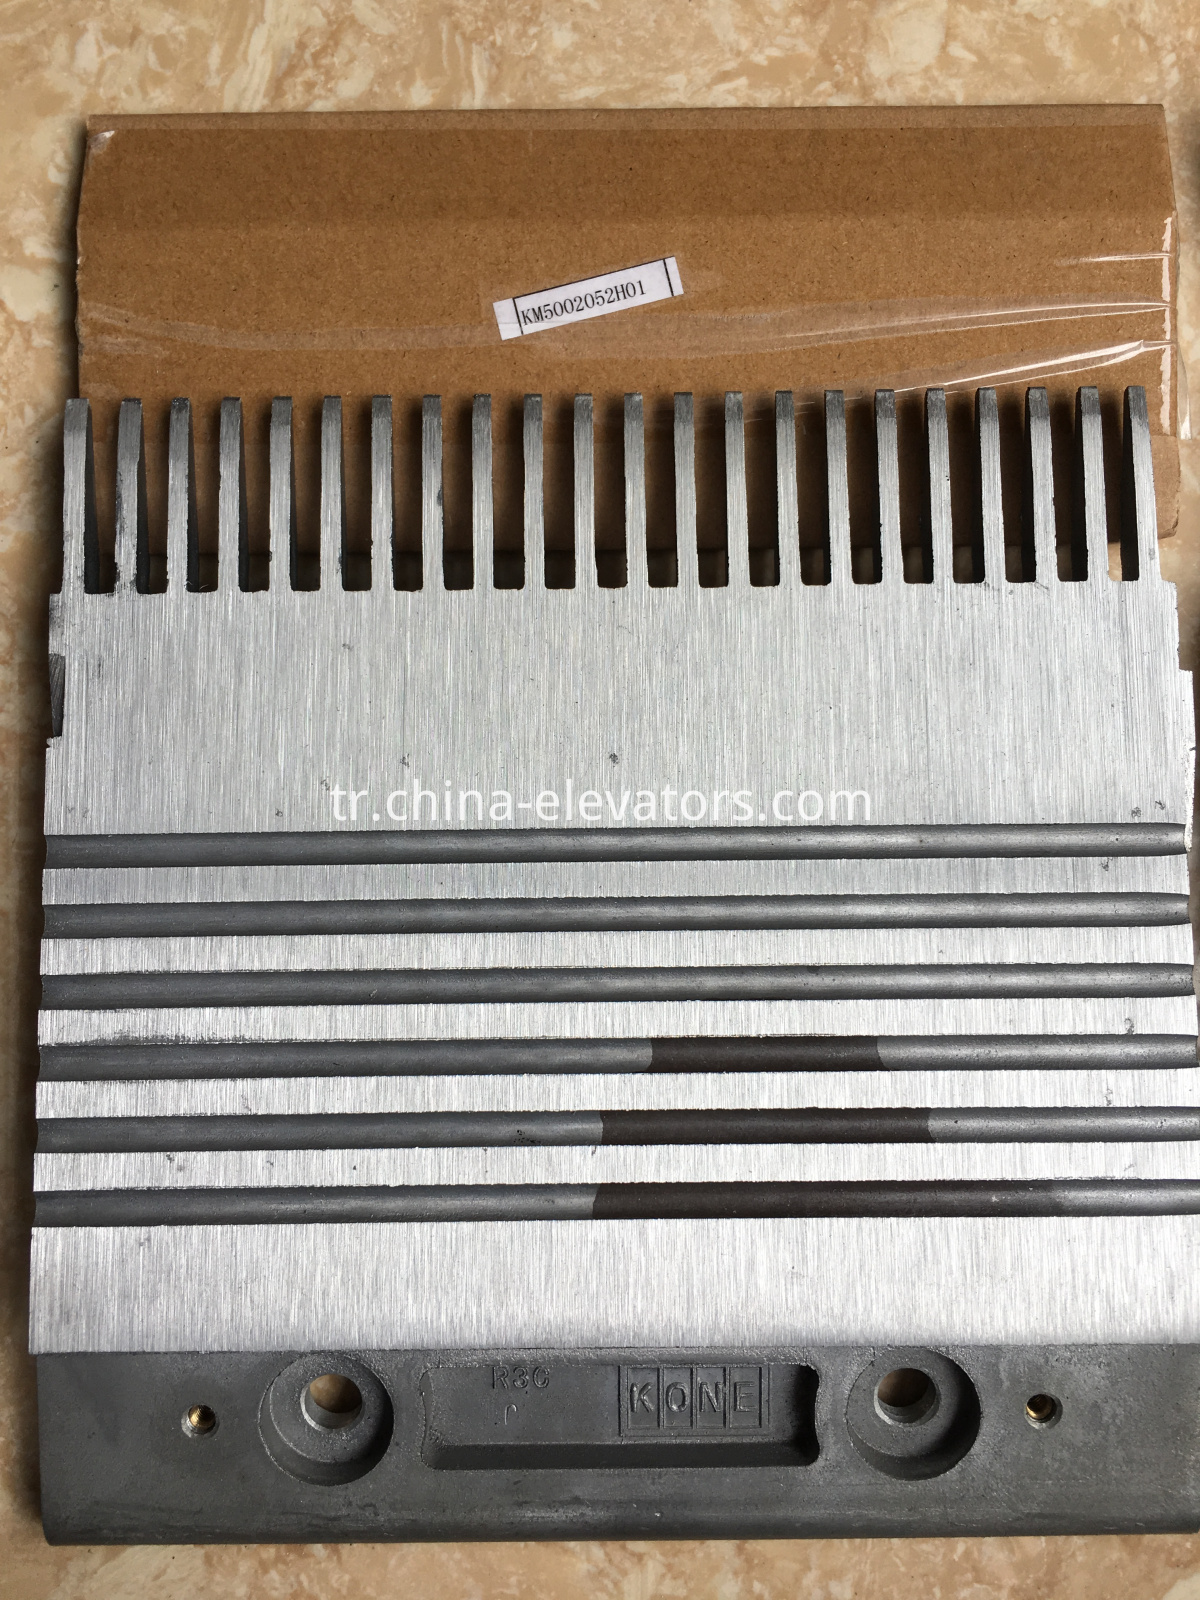 R3C Aluminium Alloy Combs for KONE Escalators, Center